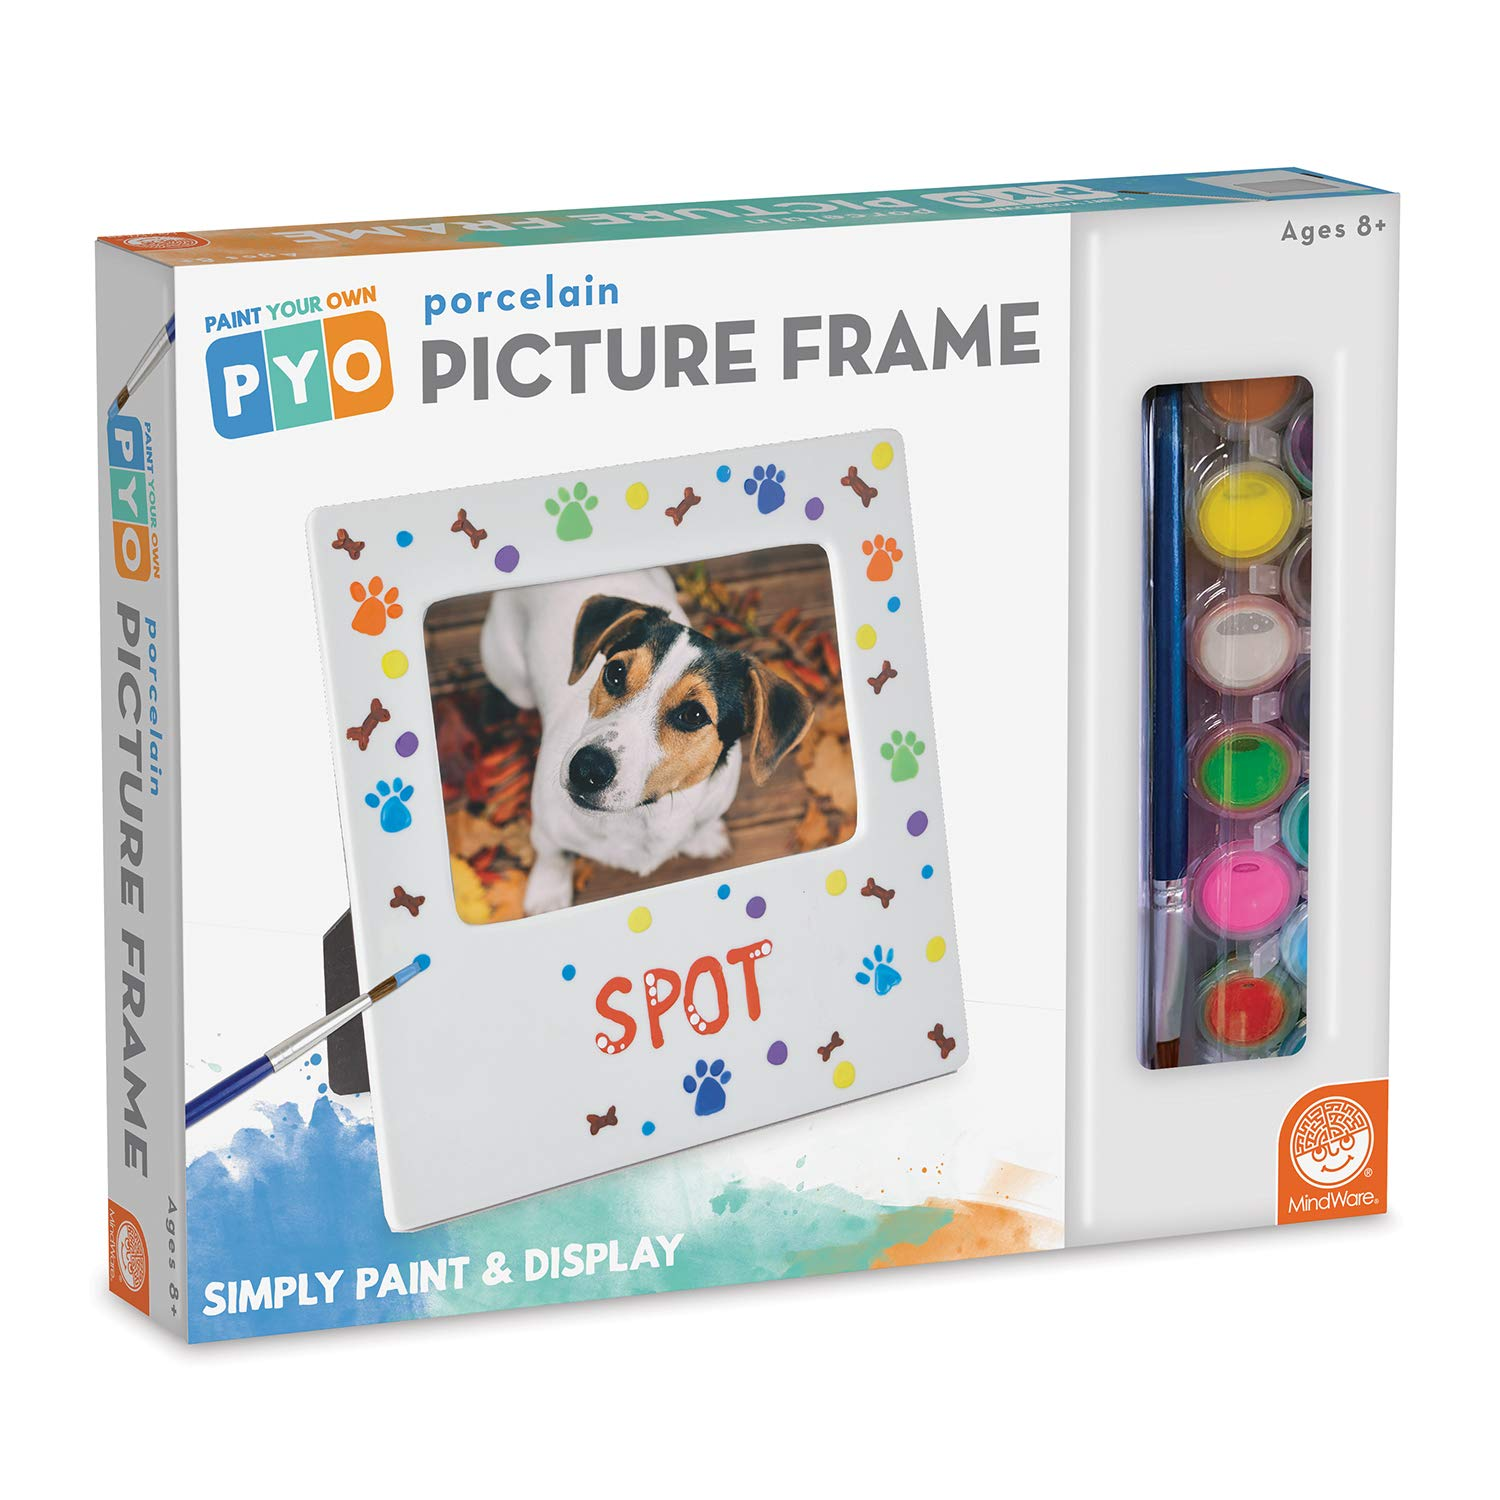 MindWare Paint Your Own Porcelain: Picture Frame